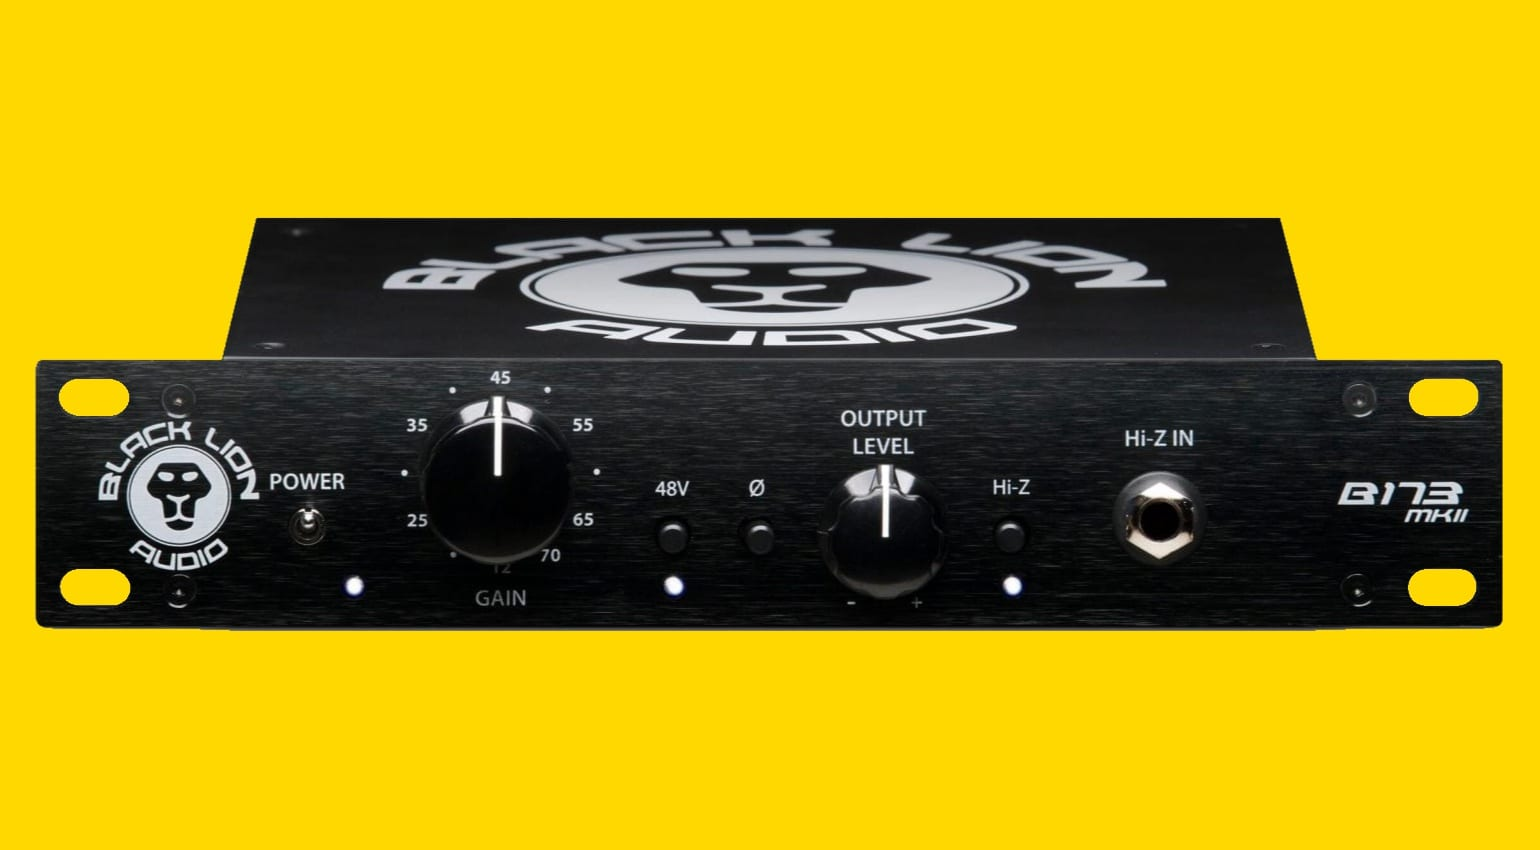 Black Lion Audio B173 mkii